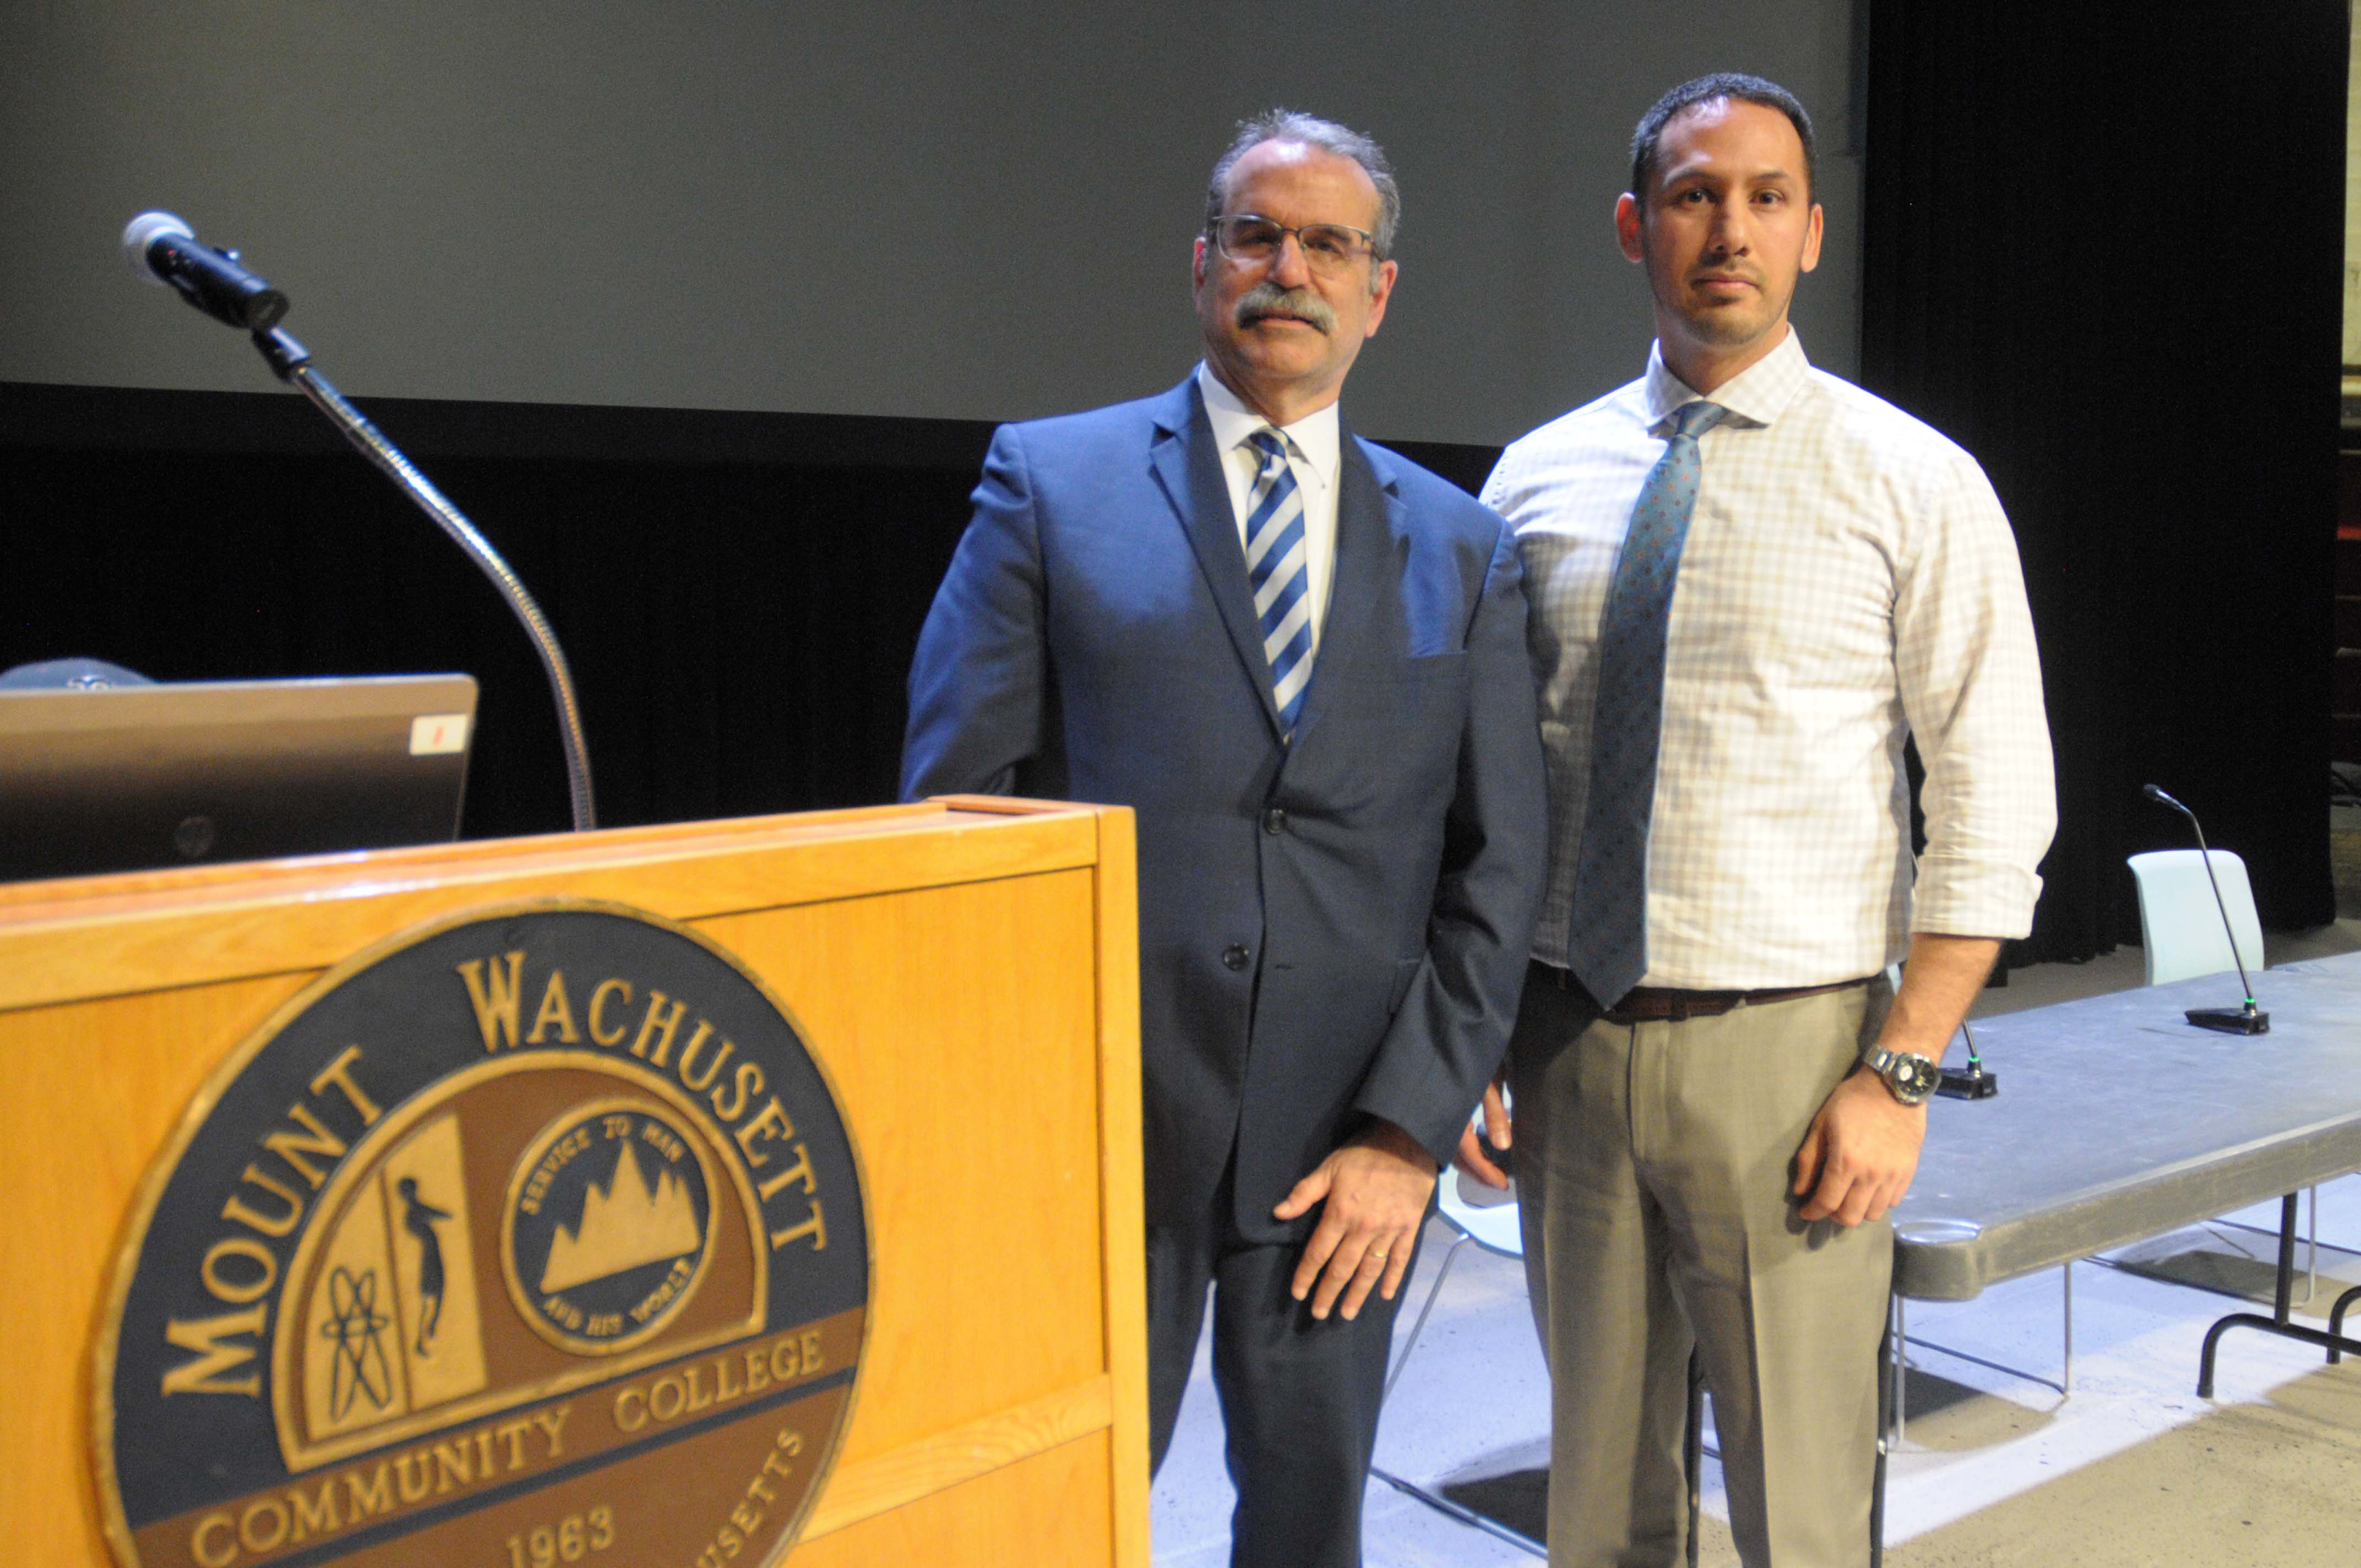 Two men stand together next to a podium.